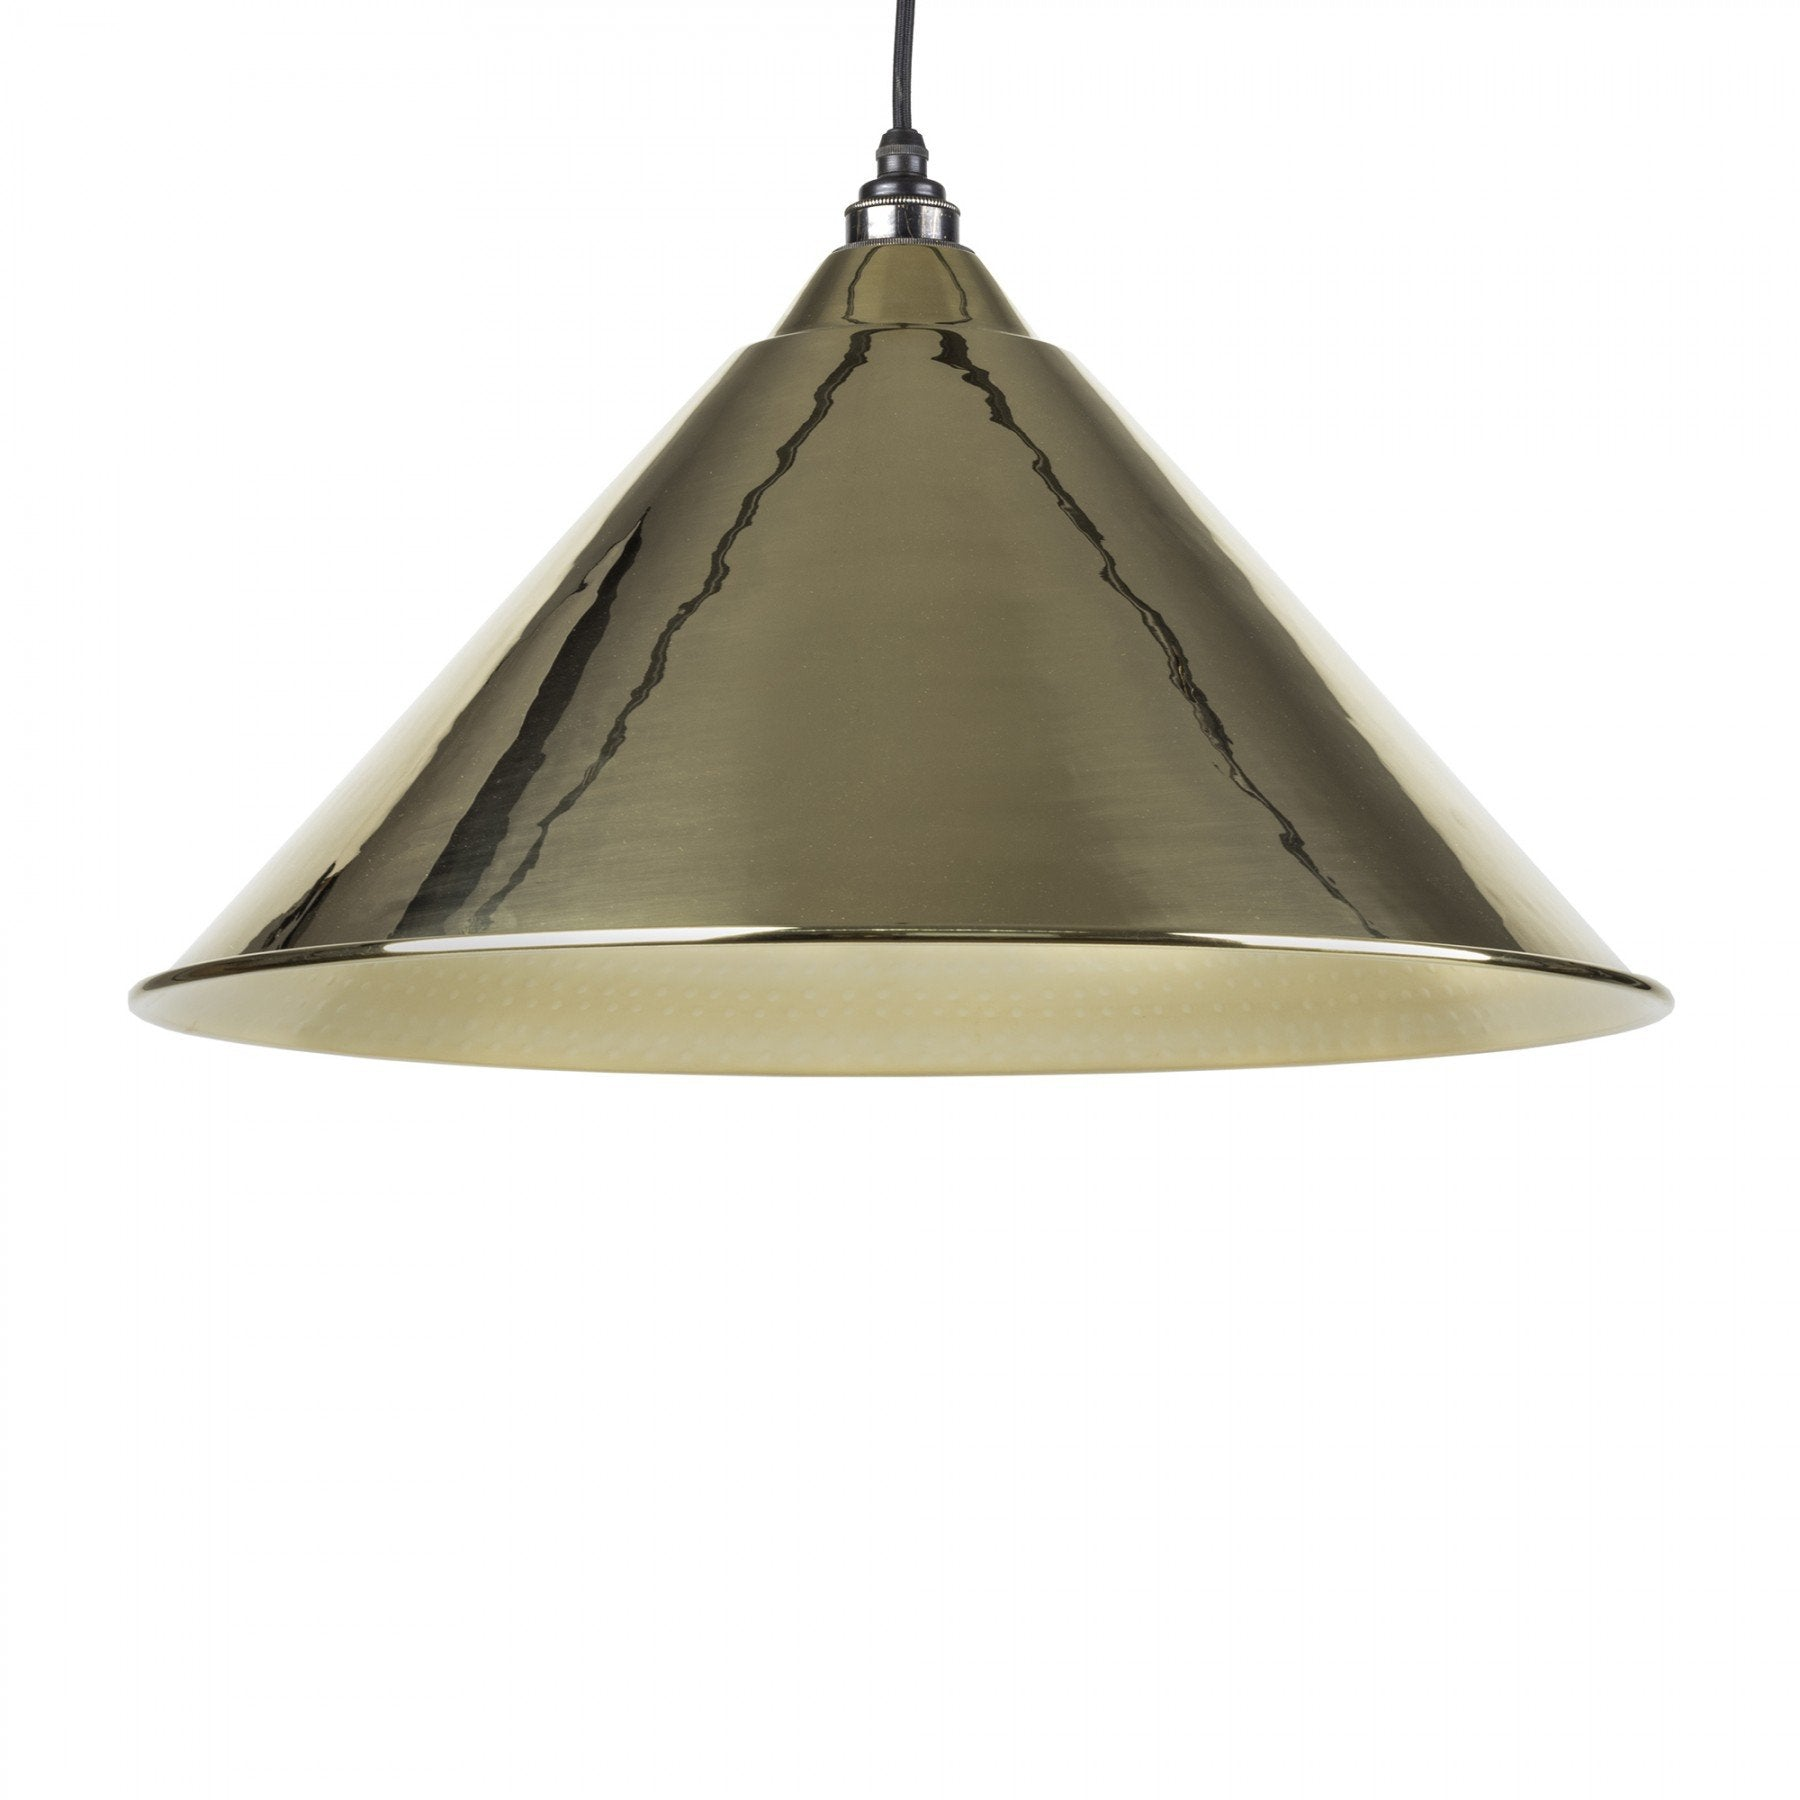 From The Anvil Hammered Brass Interior Hockley Pendant - No.42 Interiors